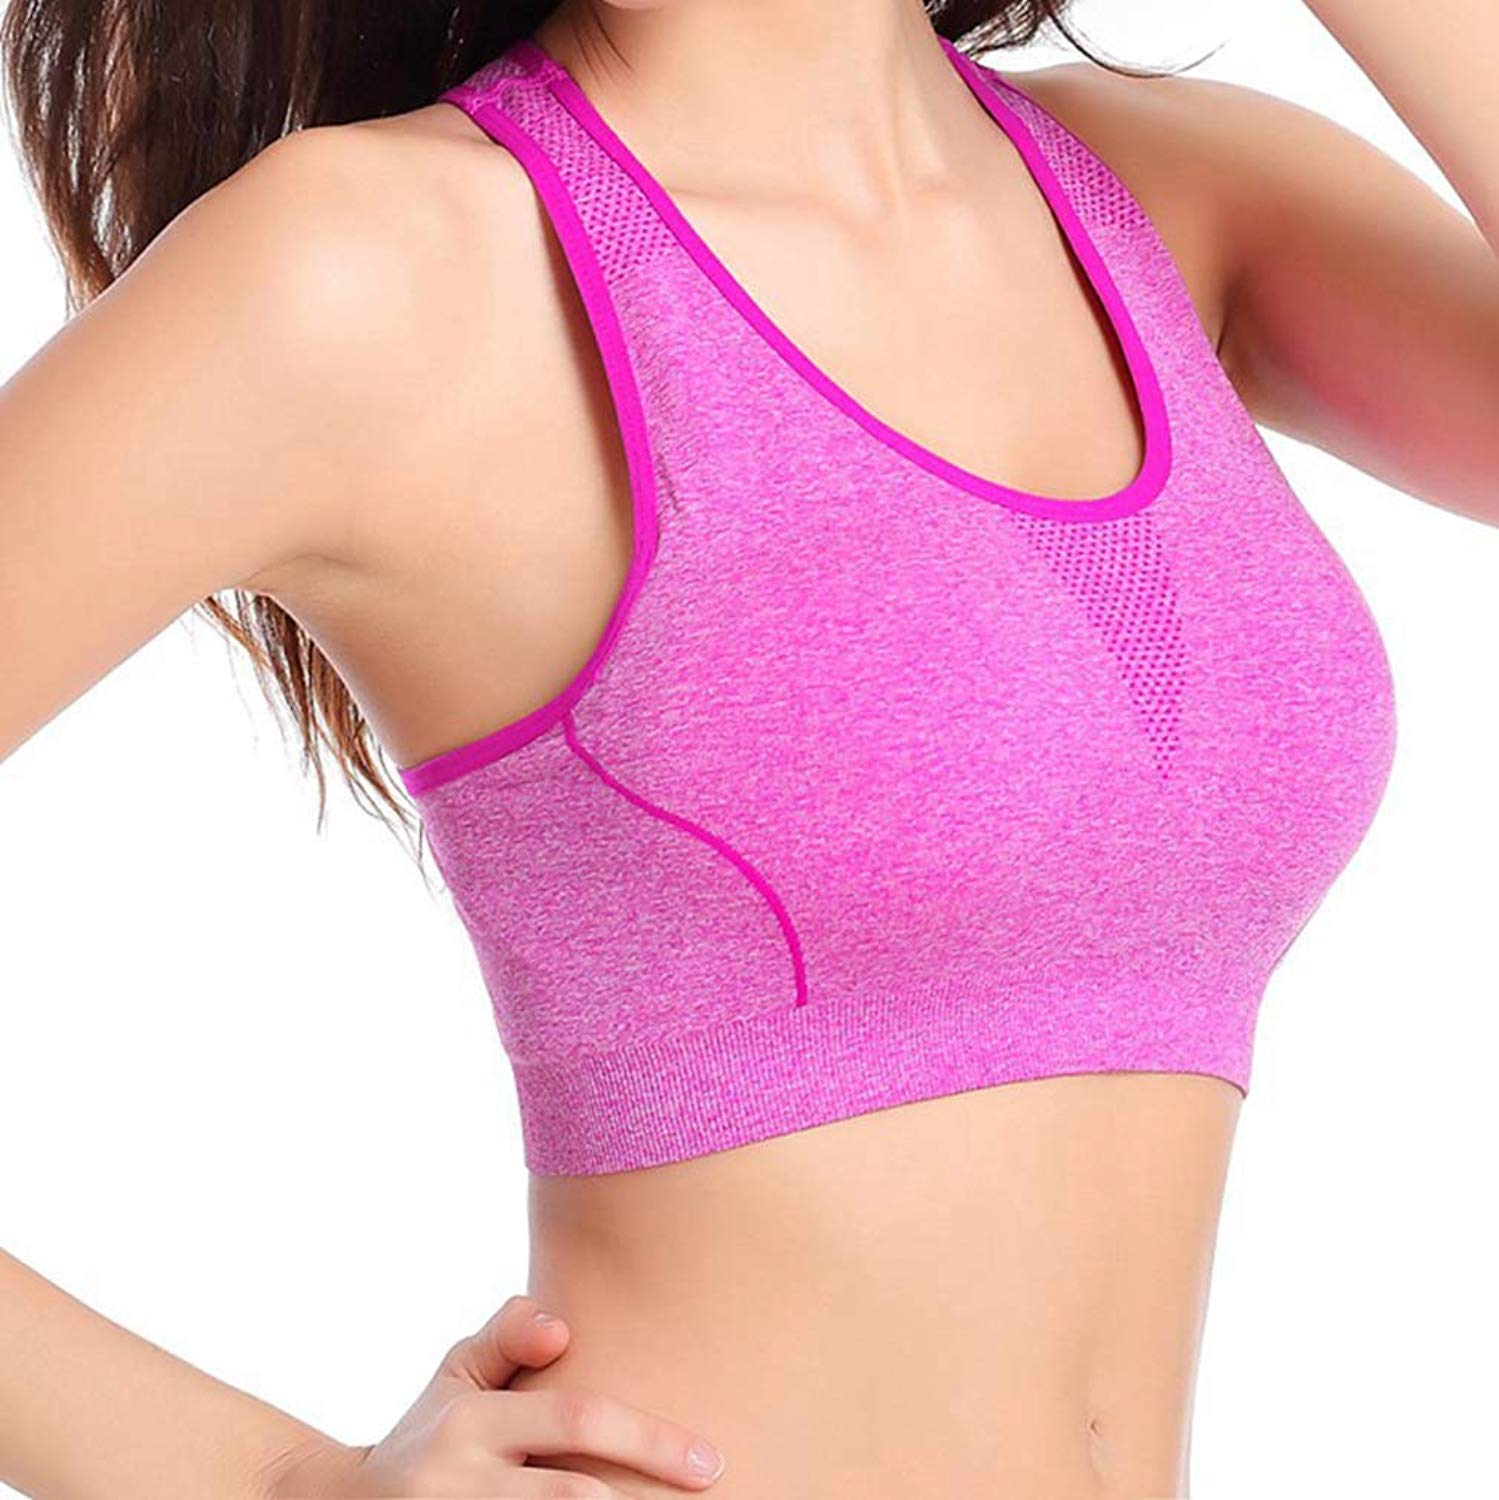 aaee91af52c4 Exercise & Fitness Sports Bras CTRICKER Seamless Sports Bra Breathable  Quick Drying Running High Elasticity Shockproof